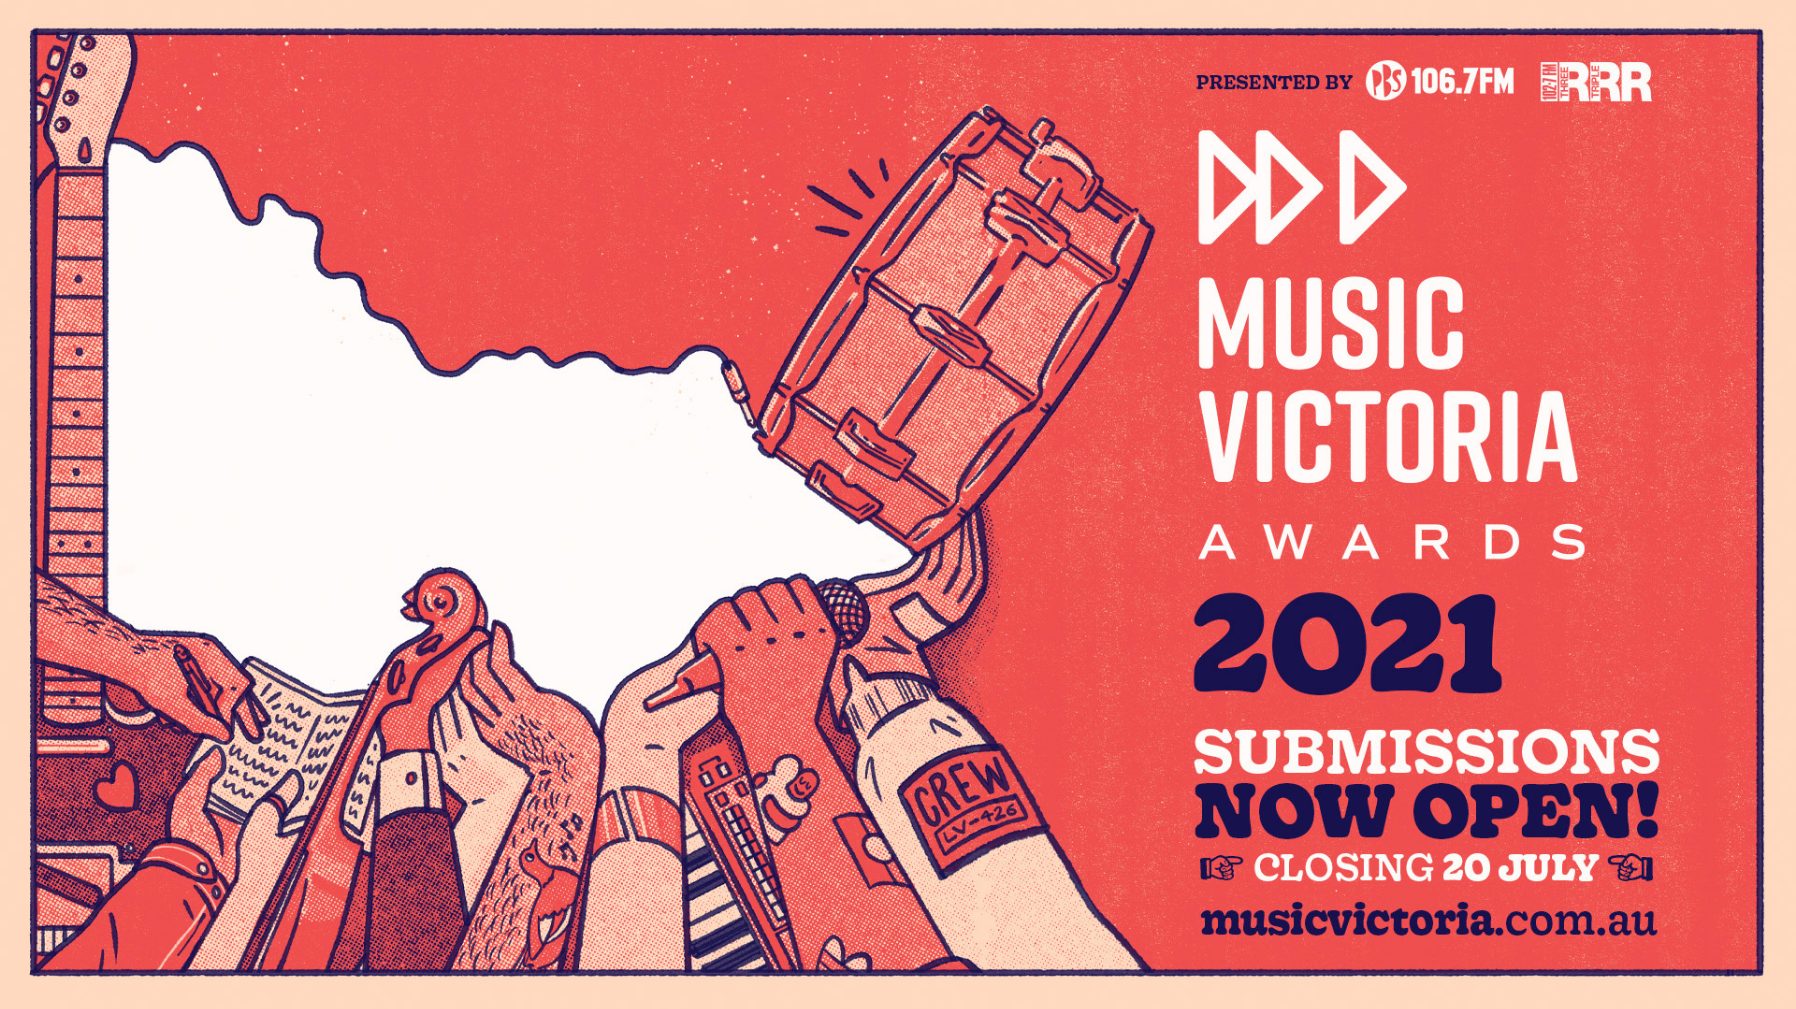 Submission open for Music Victoria Awards 2021